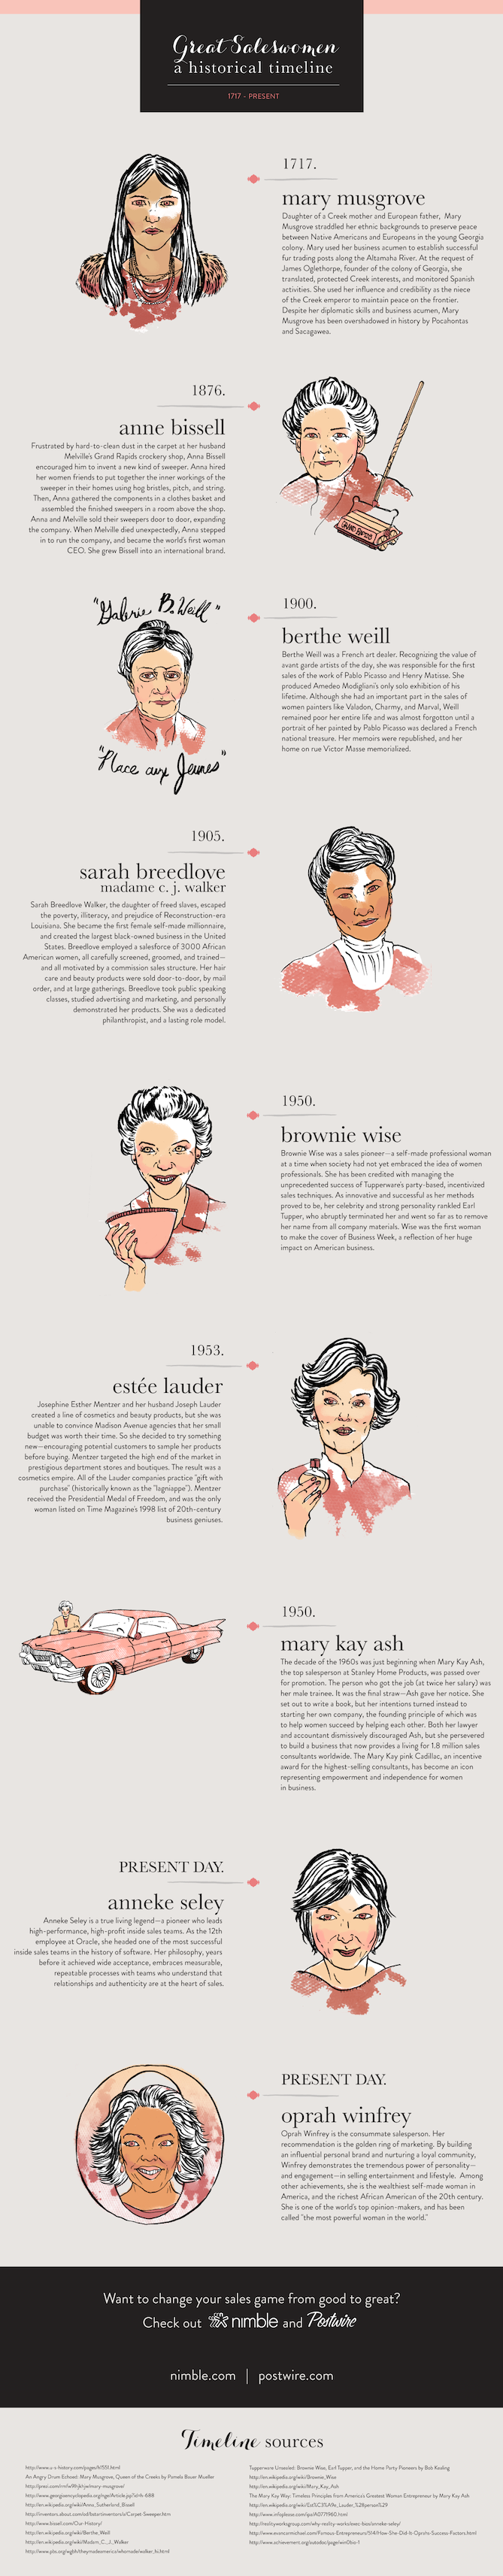 great-saleswomen-infographic.png